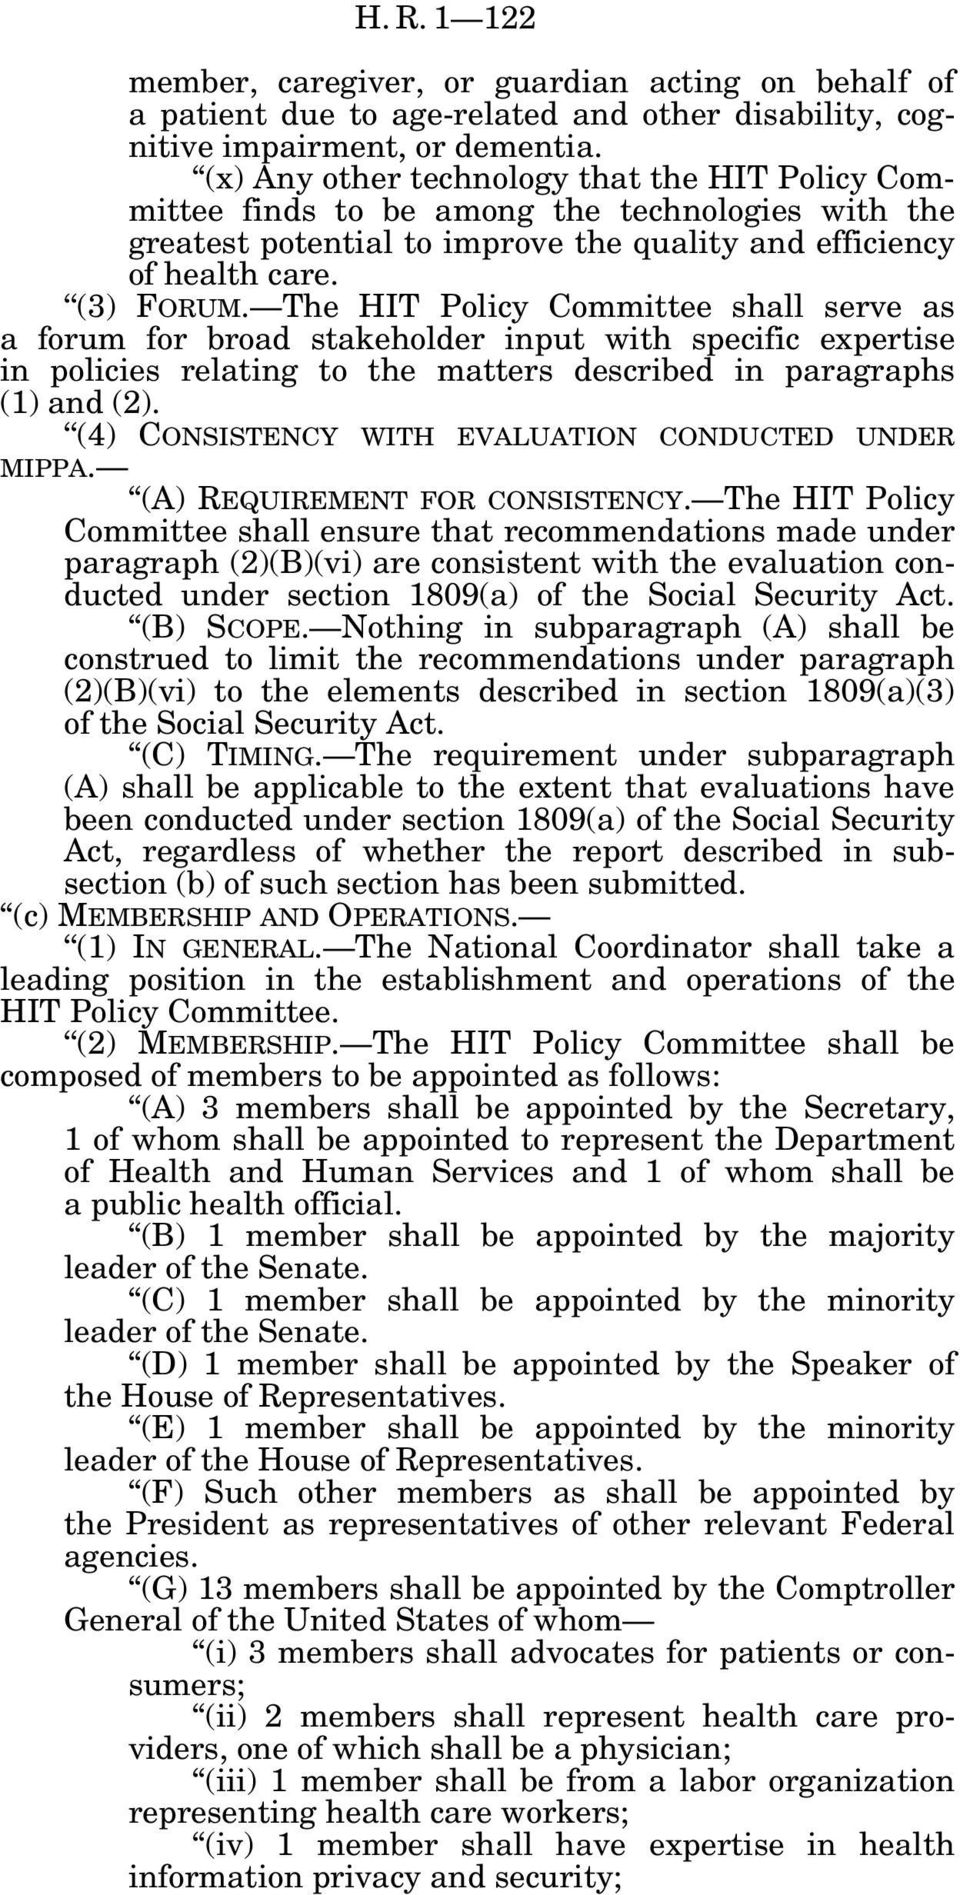 The HIT Policy Committee shall serve as a forum for broad stakeholder input with specific expertise in policies relating to the matters described in paragraphs (1) and (2).